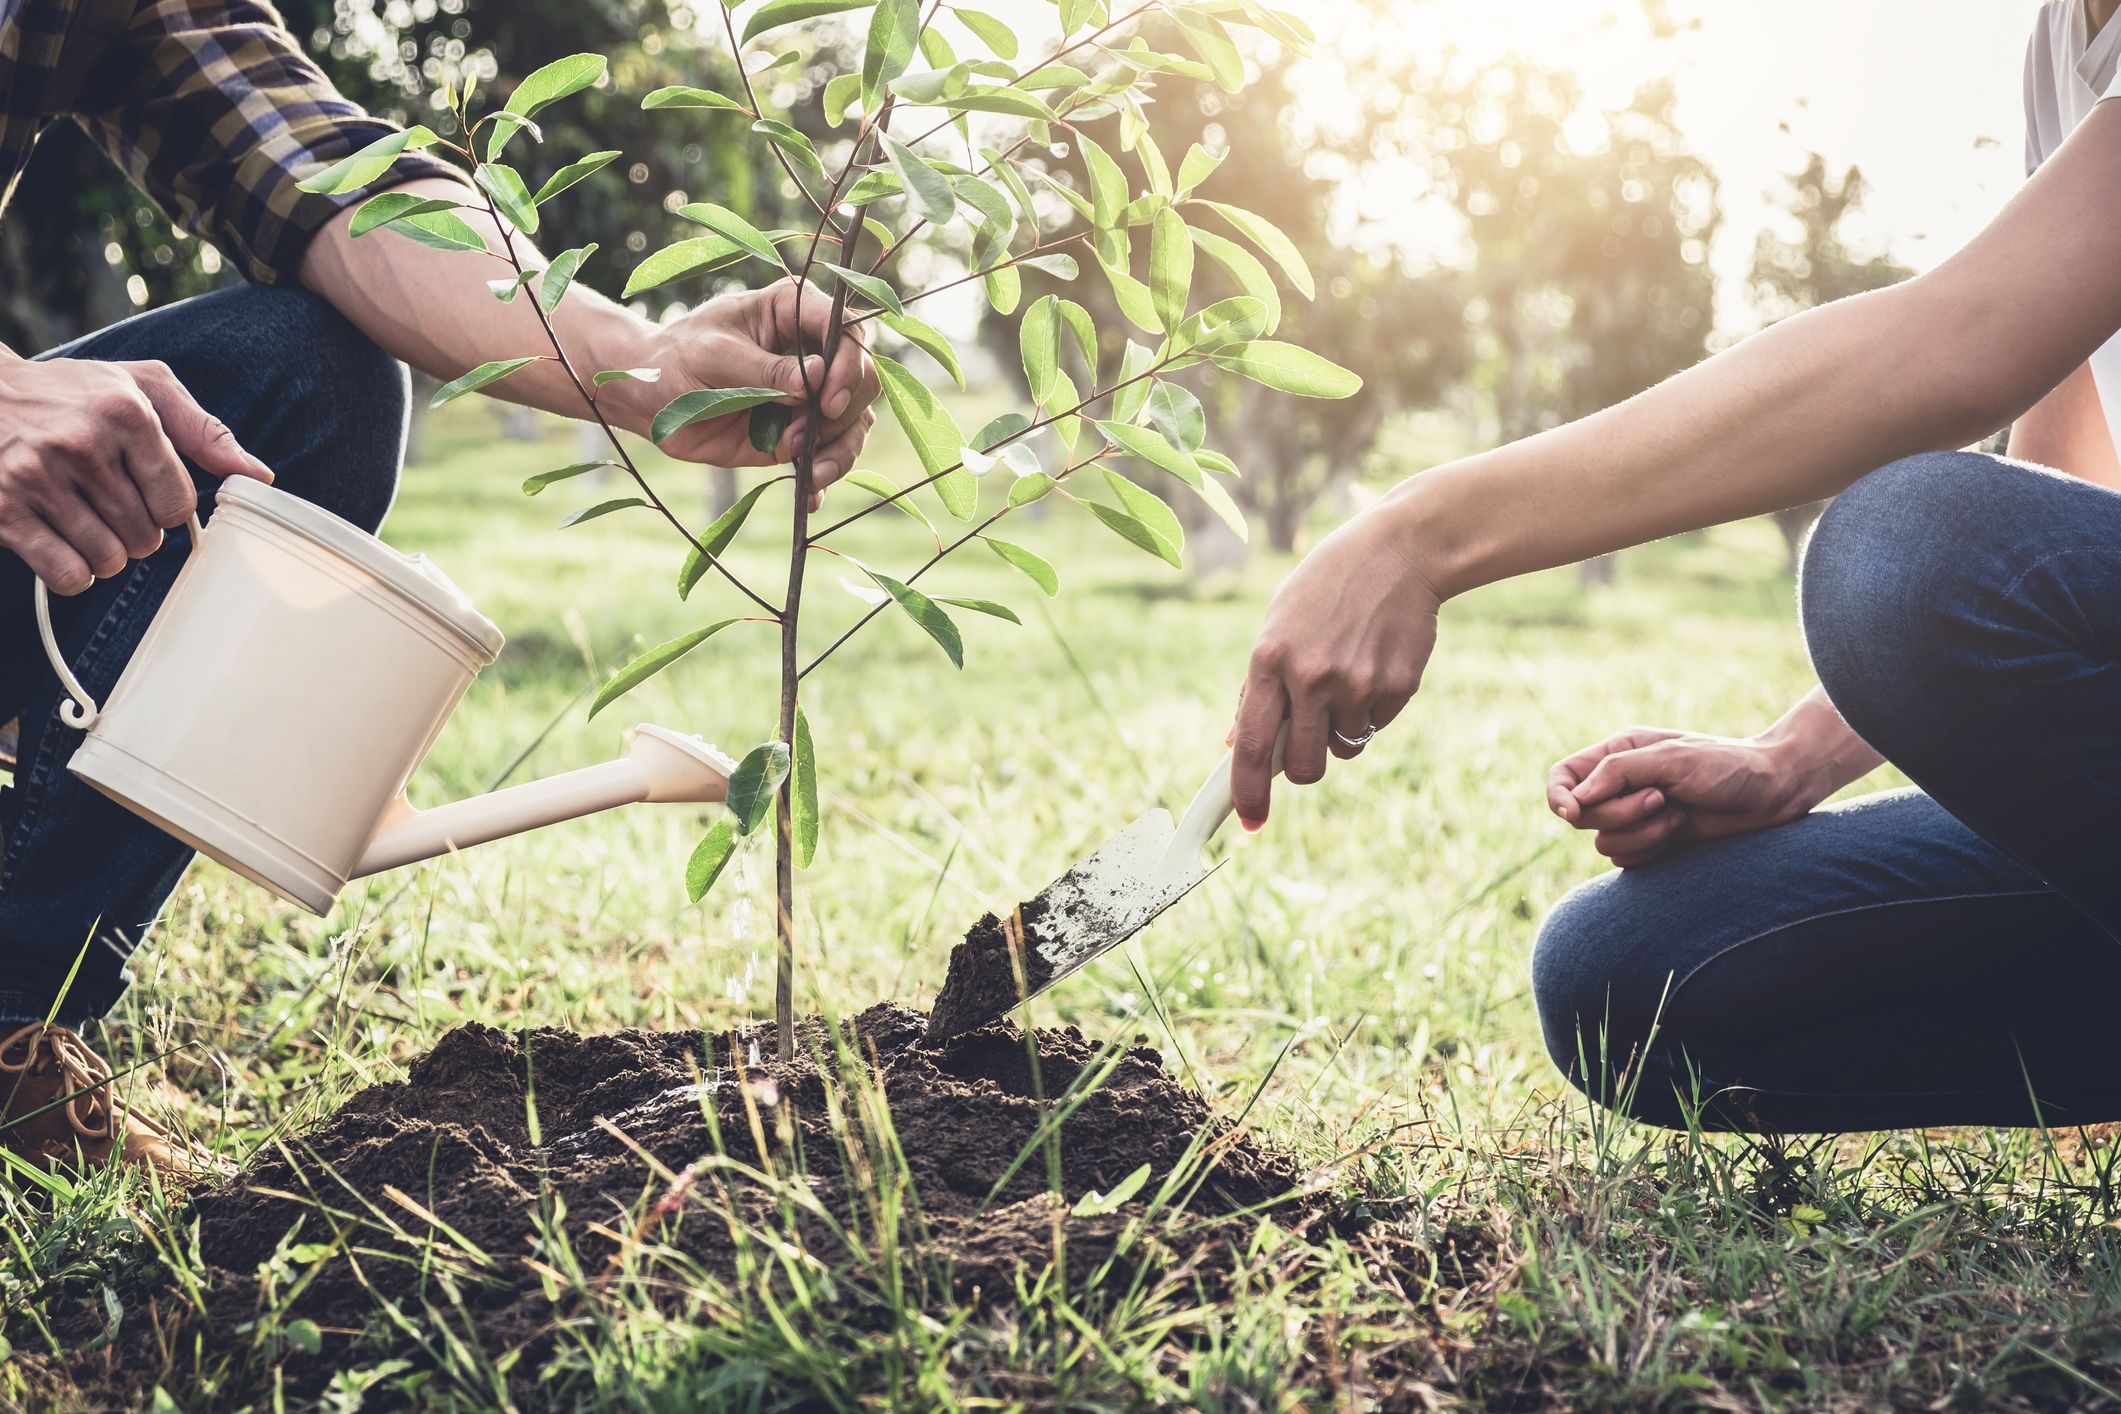 London College of Garden Design donates 50 trees to the NHS Forest initiative